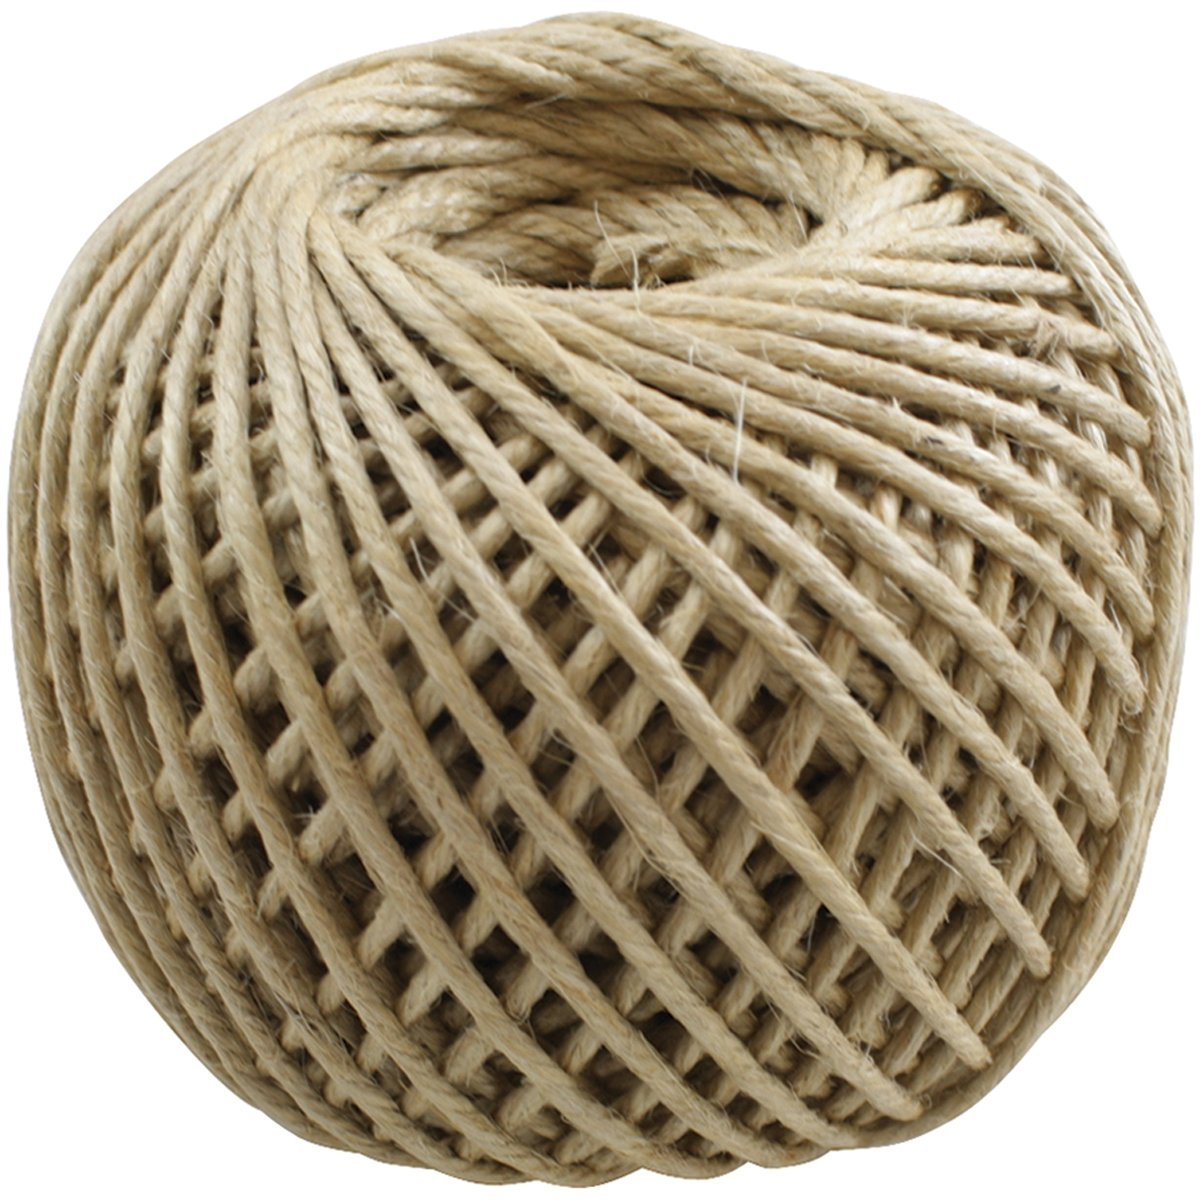 Natural Jute Twine 4-Ply Ball Shape 100 Yards